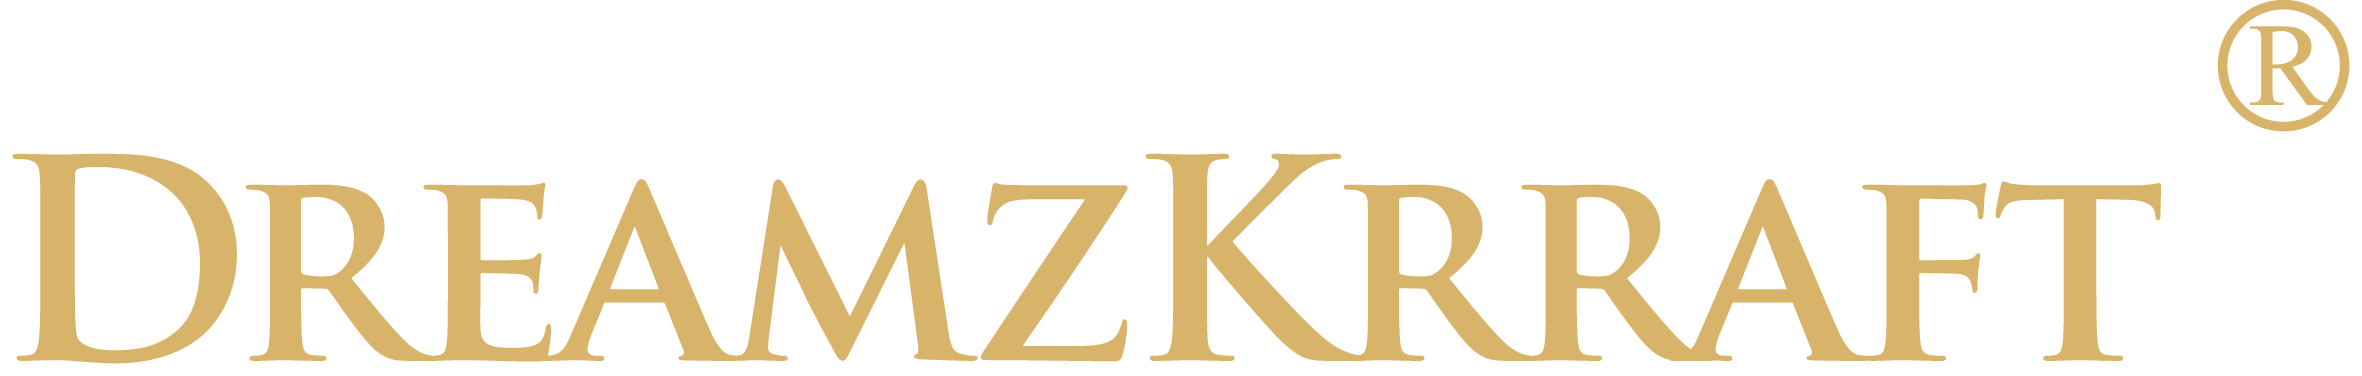 DreamzKrraft Logo